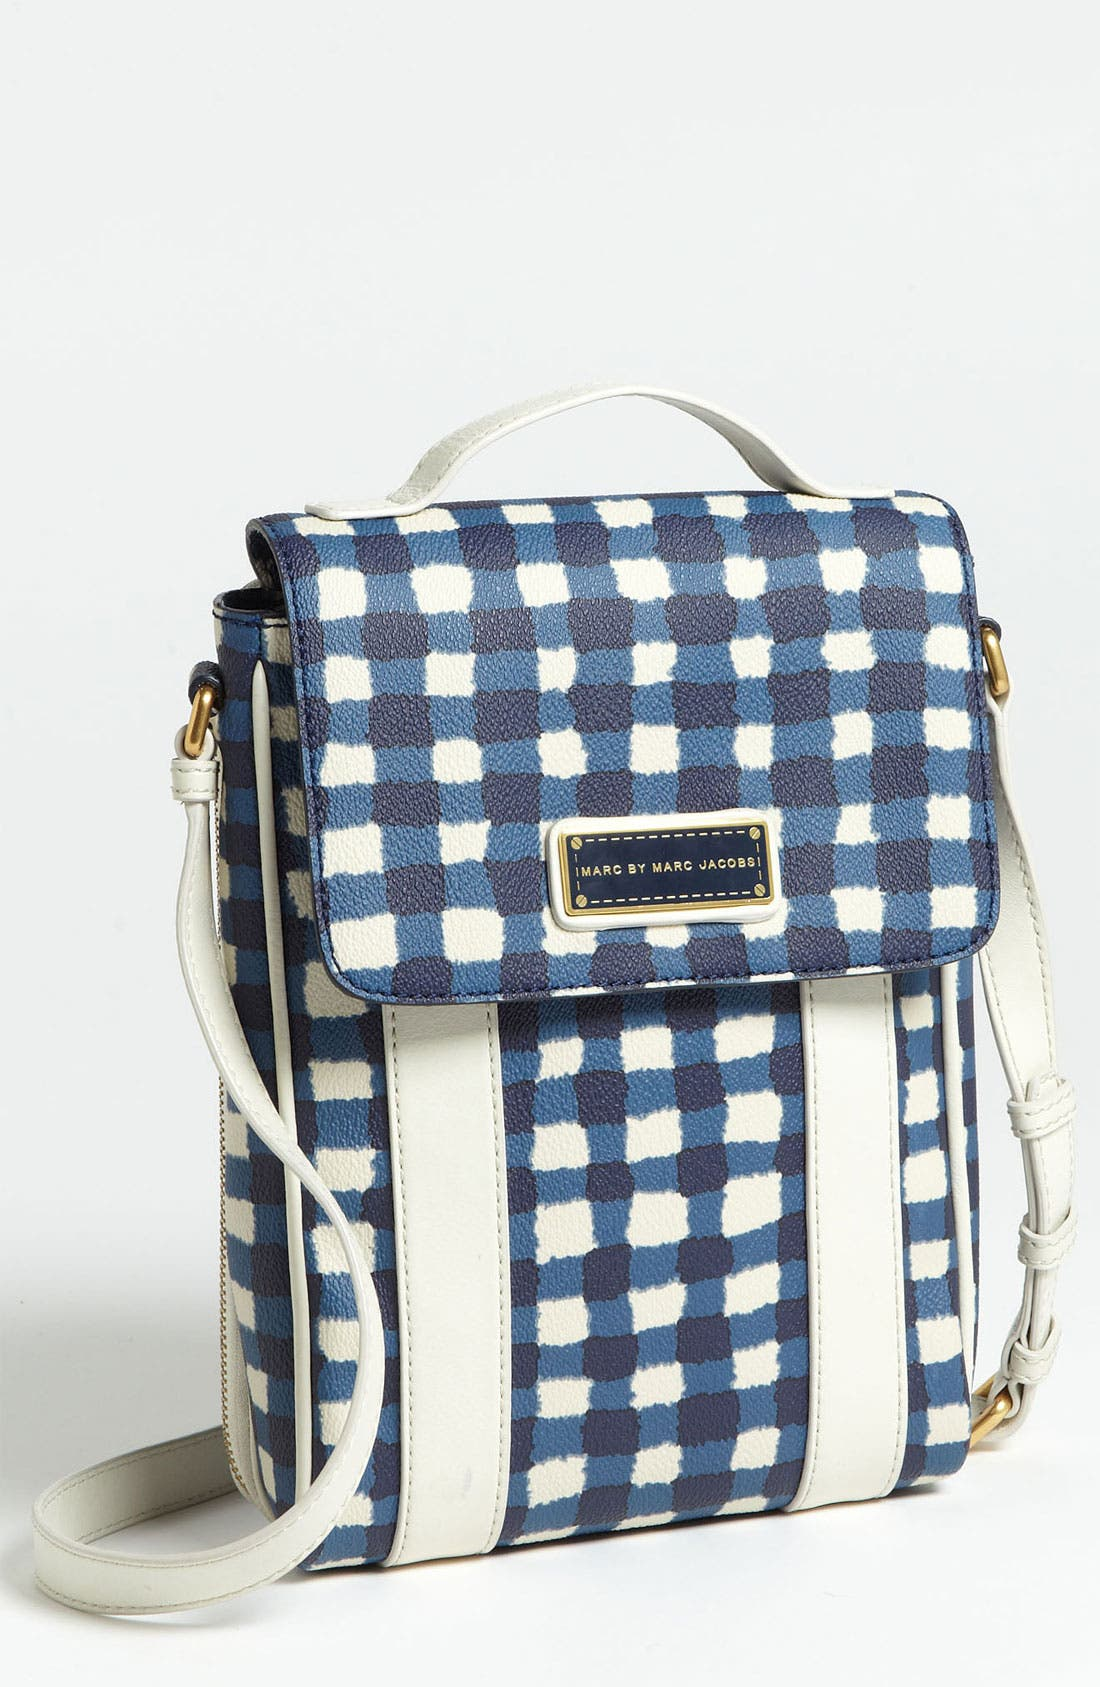 Alternate Image 1 Selected - MARC BY MARC JACOBS 'Marc'd & Check'd' Print Tablet Crossbody Bag